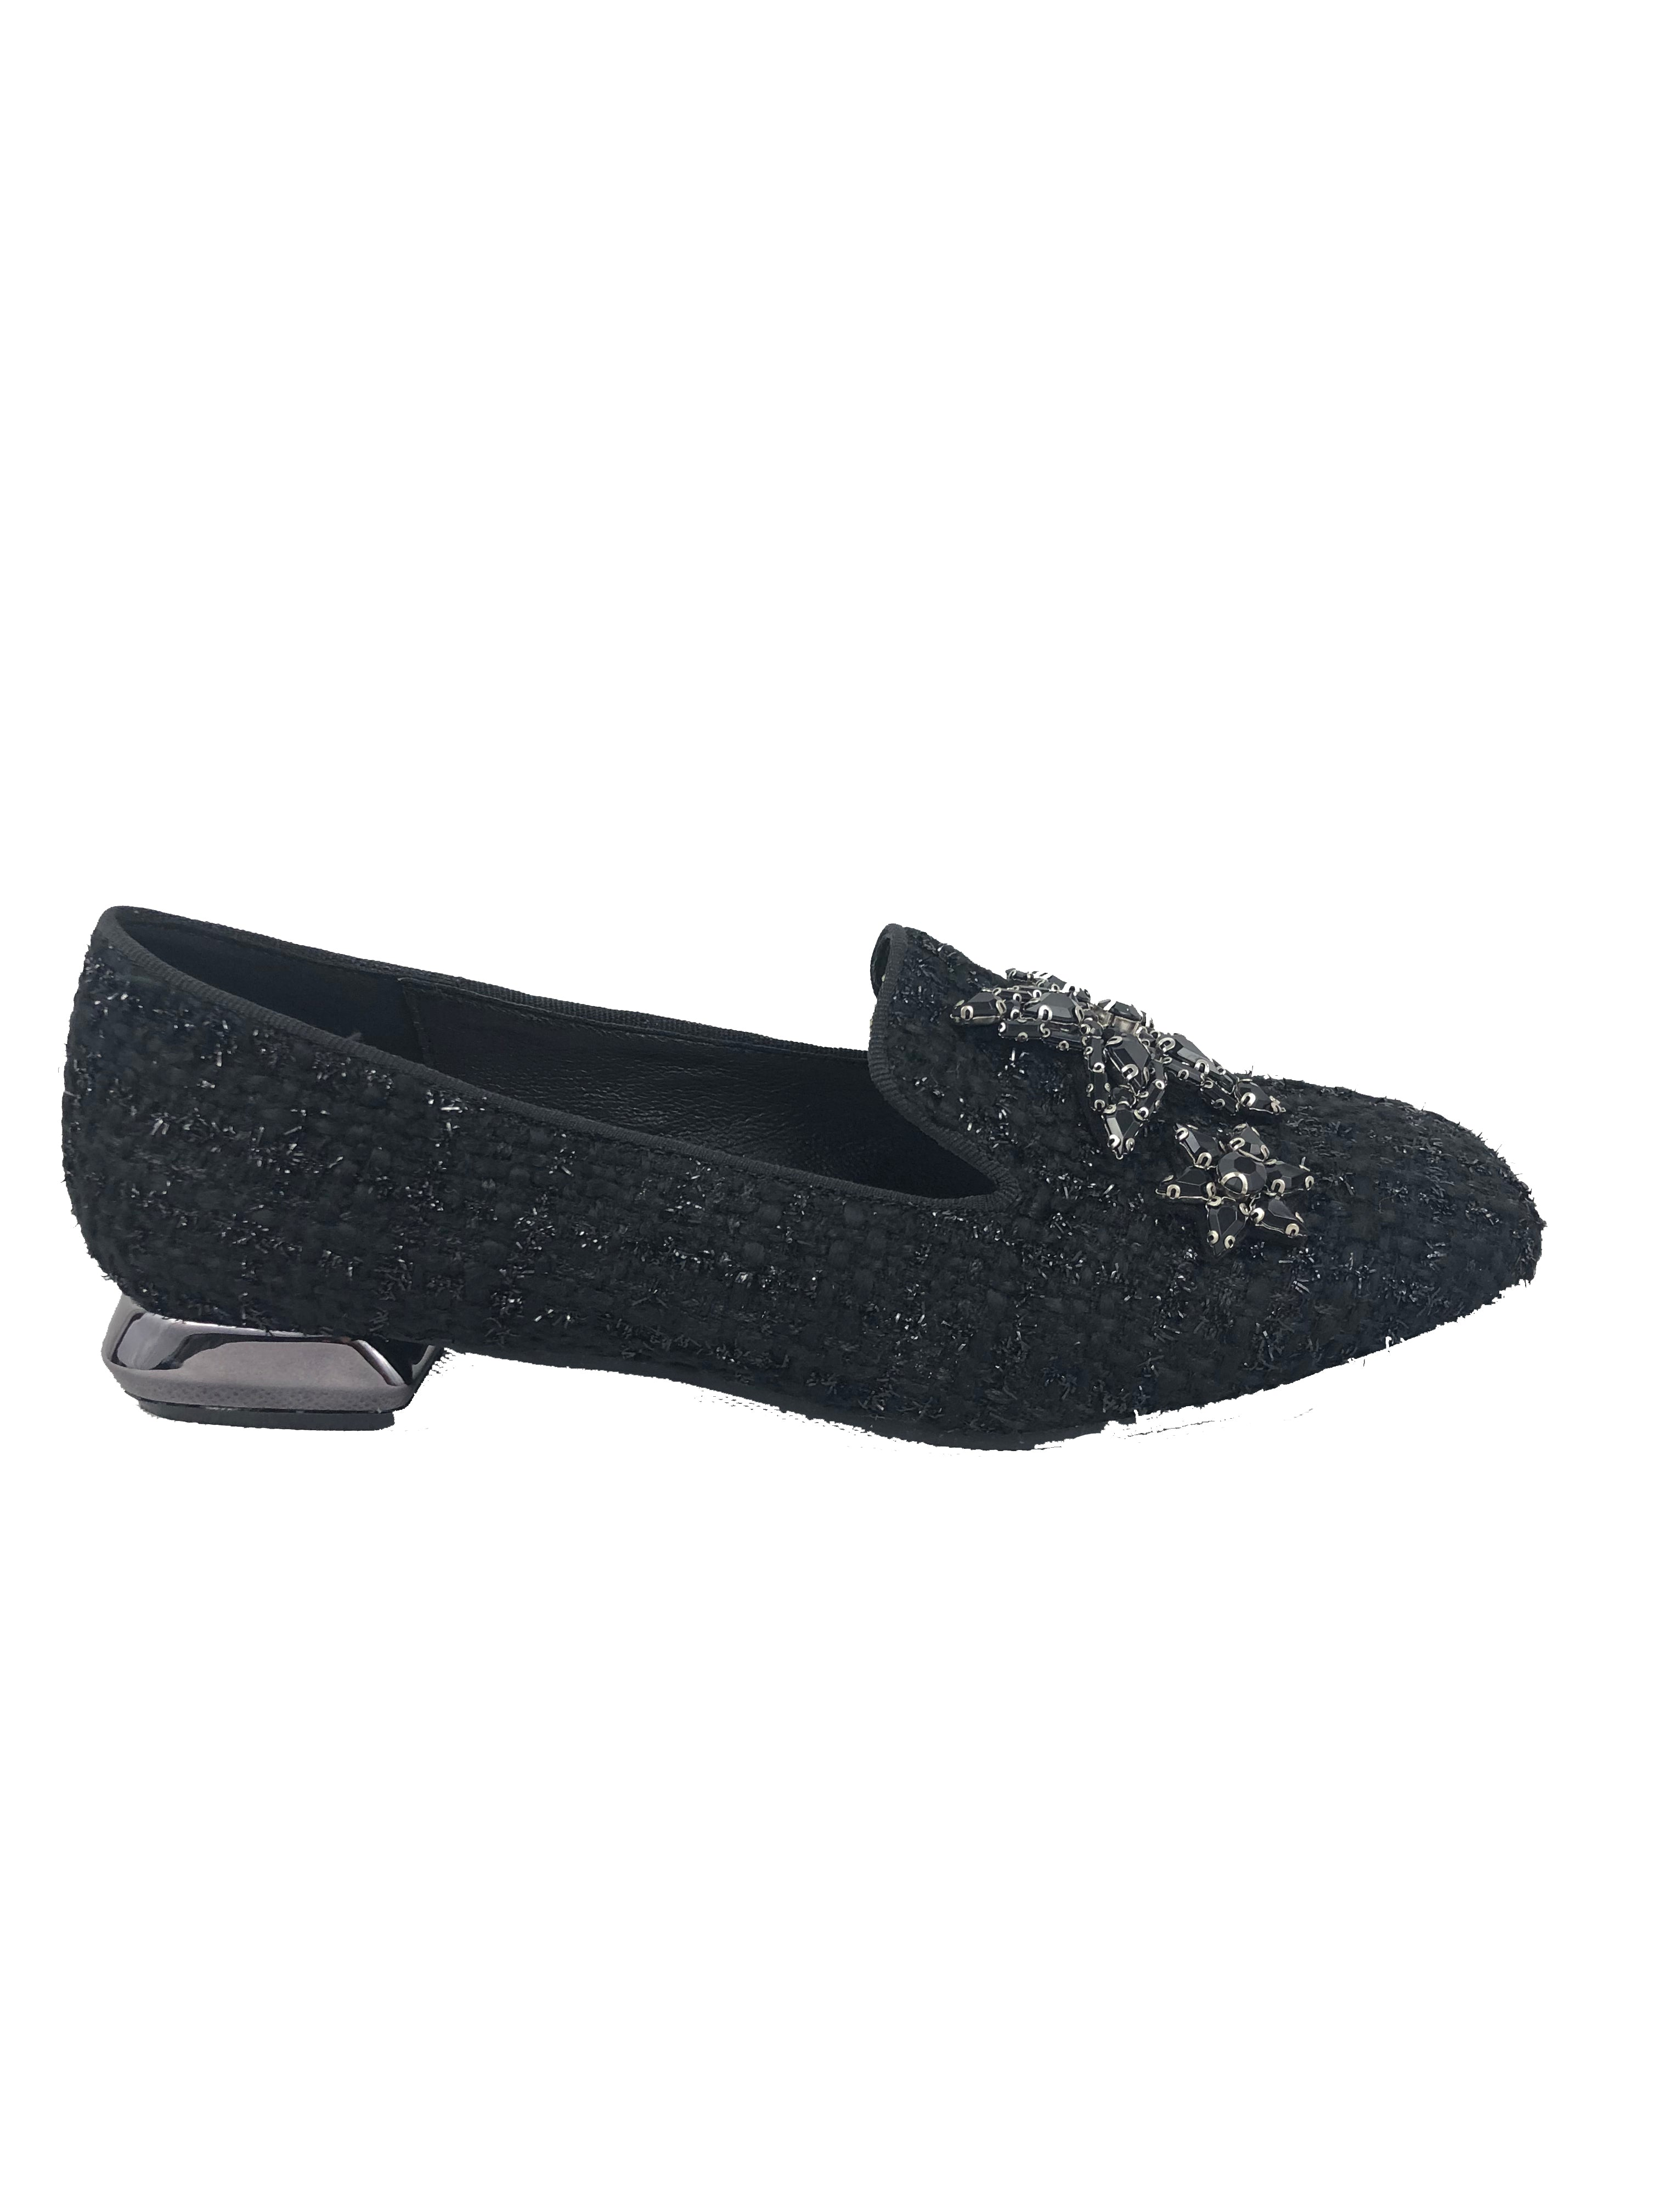 Menbur Black Tweed Pumps